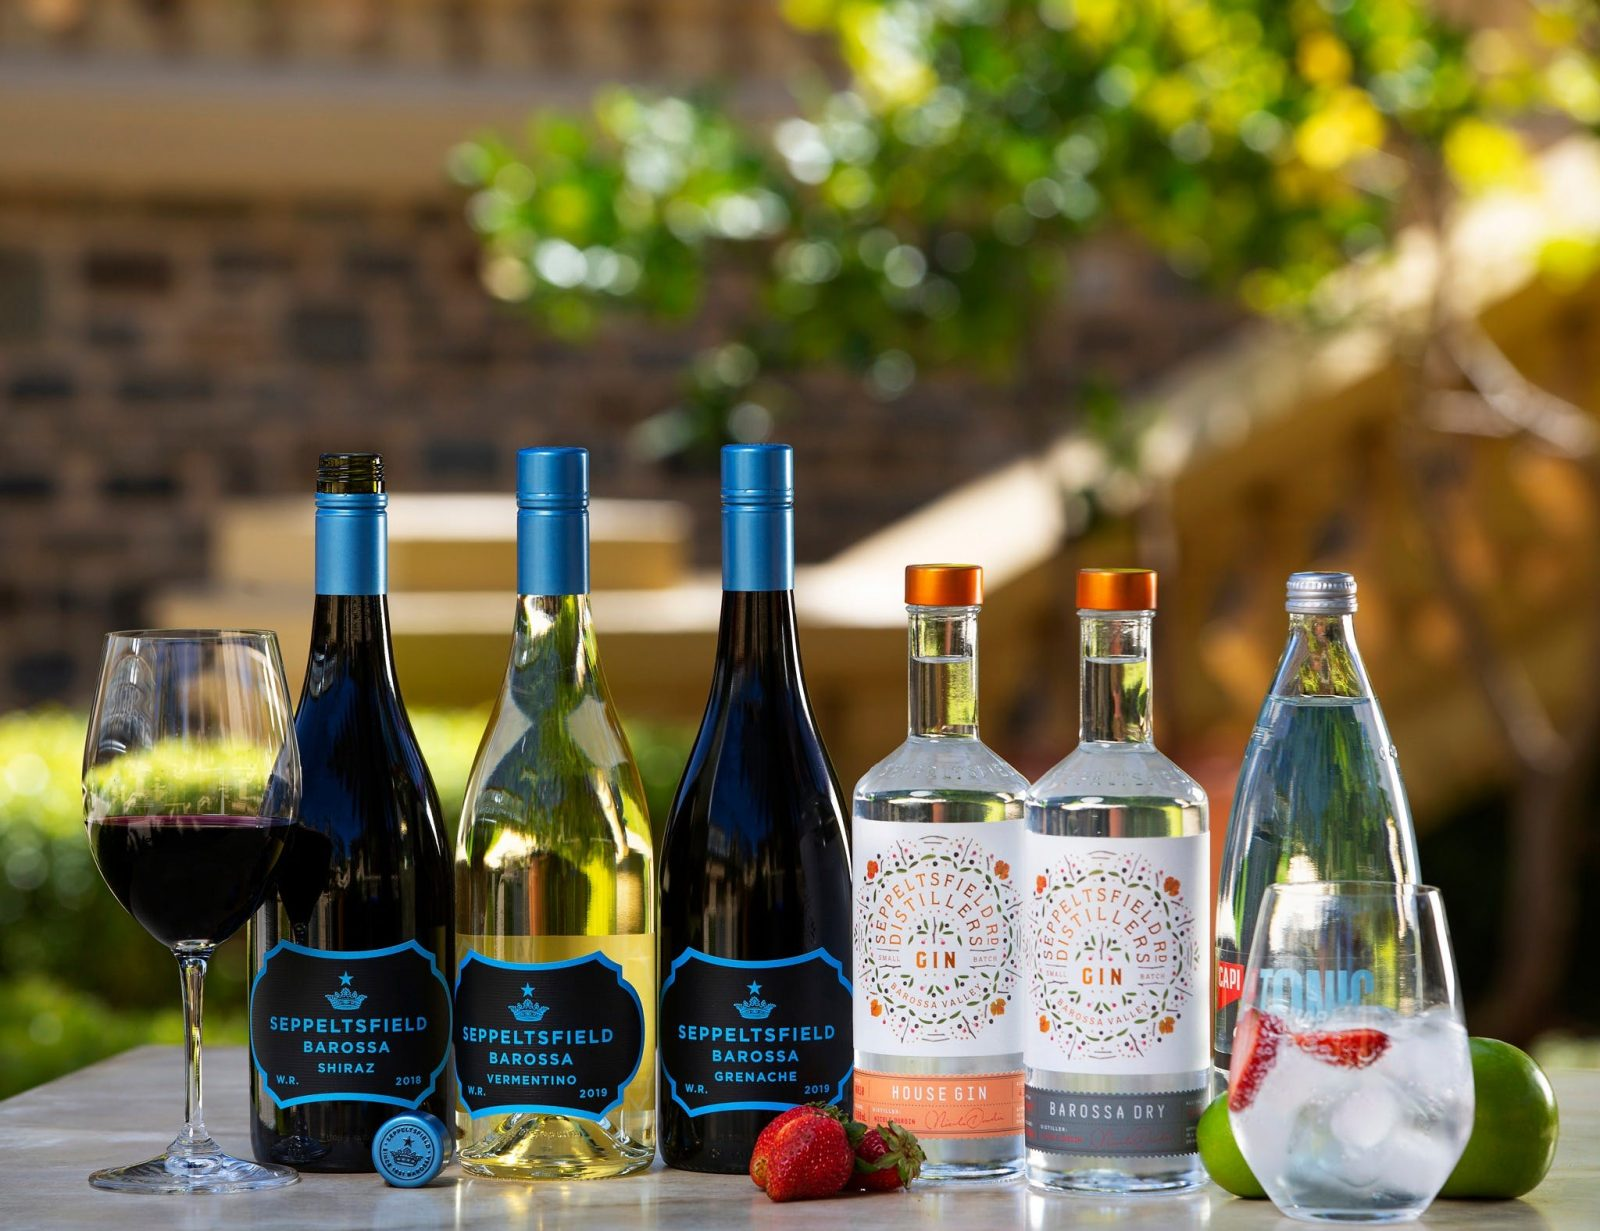 Stay at Home with Seppeltsfield Pack - Barossa Wine & Barossa Gin